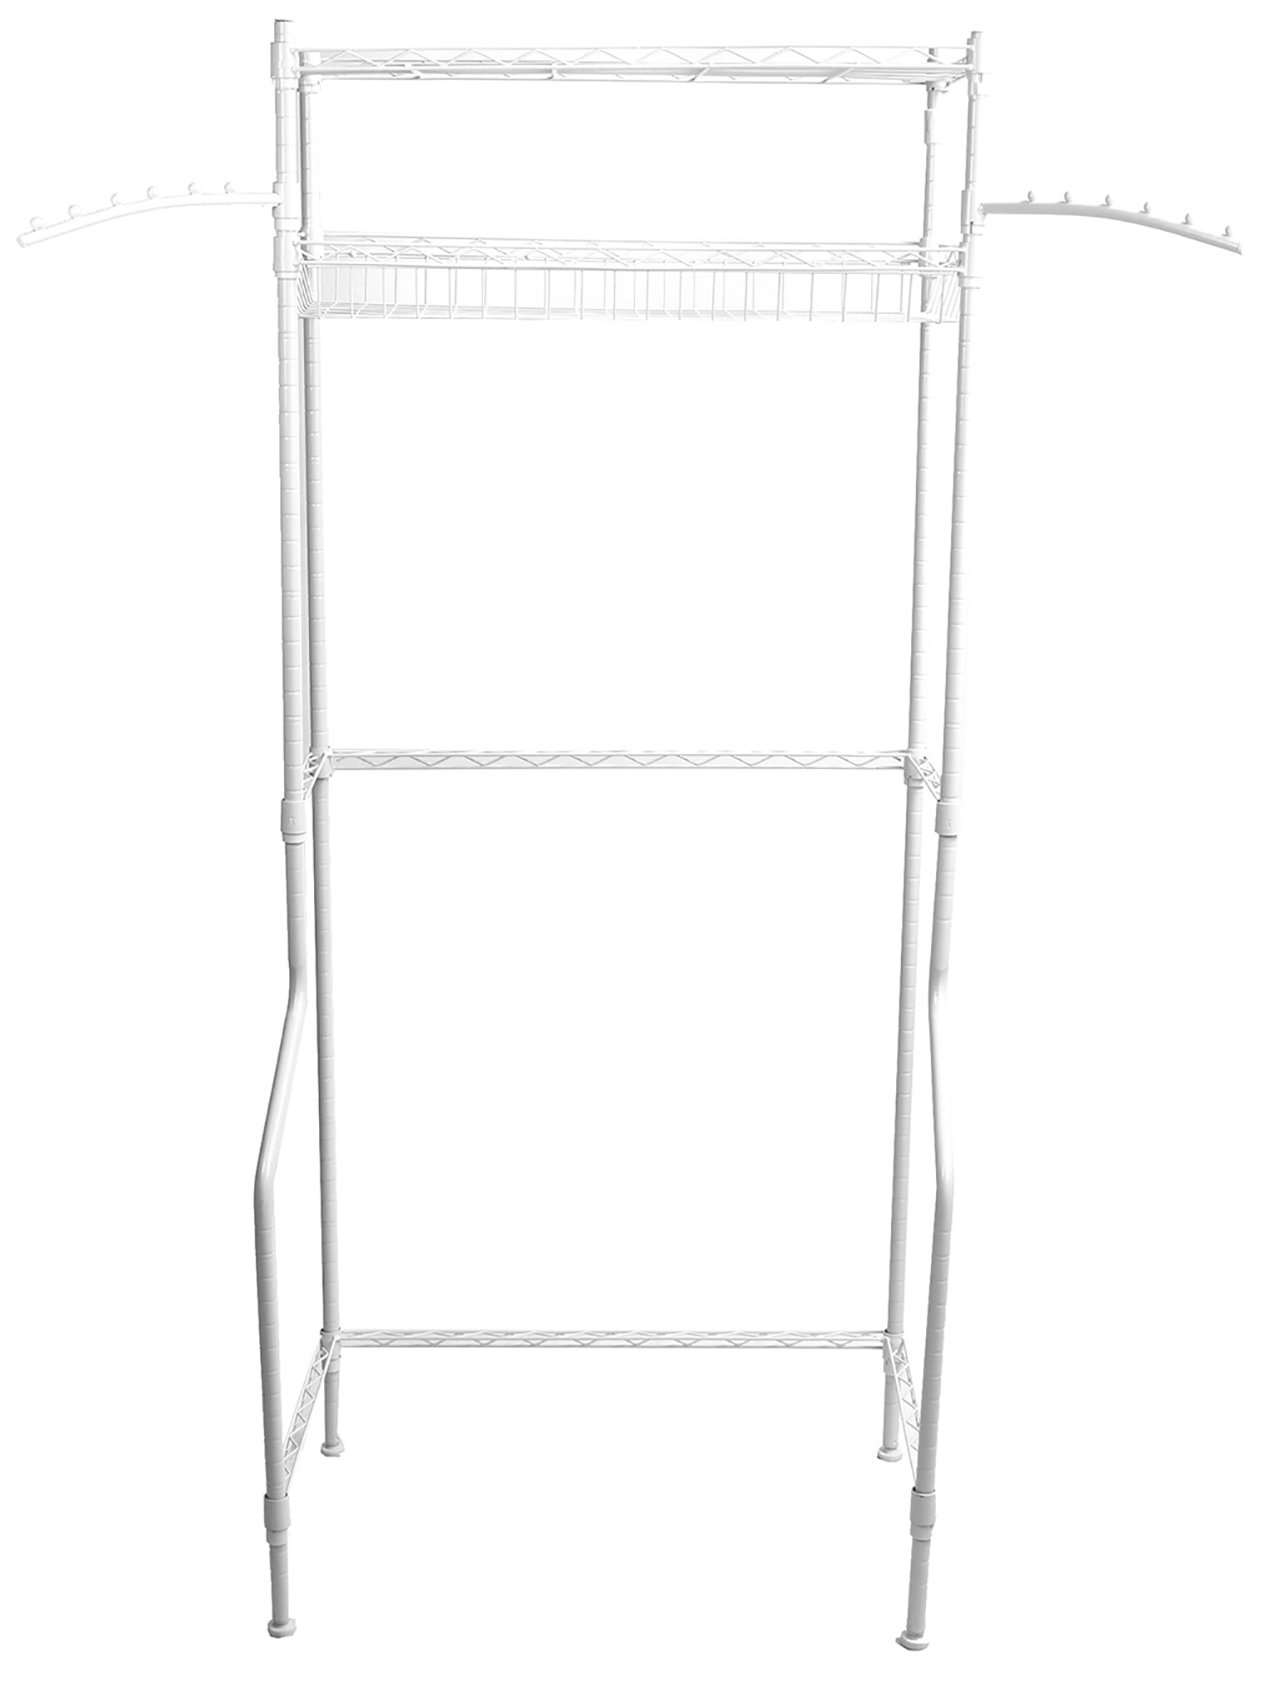 Mind Reader Washing Machine Shelf, White - MULTIPLE USE - With 2 Shelves, this storage rack makes it possible to load a variety of items. If using for over your toilet, store your toiletries, toilet paper, towels, and other bathroom accessories. If using for your laundry room, place over your washing maching and store your laundry detergent, tide pods, fabric softeners and more laundry accessories STABILITY & DURABILITY - Metal structure design makes sure this storage shelf is strong enough to bear an ample amount of items, while keeping them safe and stable. Your laundry supplies will be held safe with this laundry rack HIGH QUALITY - Made of metal with a classic white finish. This durable metal shelf will last for years to come - laundry-room, entryway-laundry-room, drying-racks - 61rqq7DZreL -